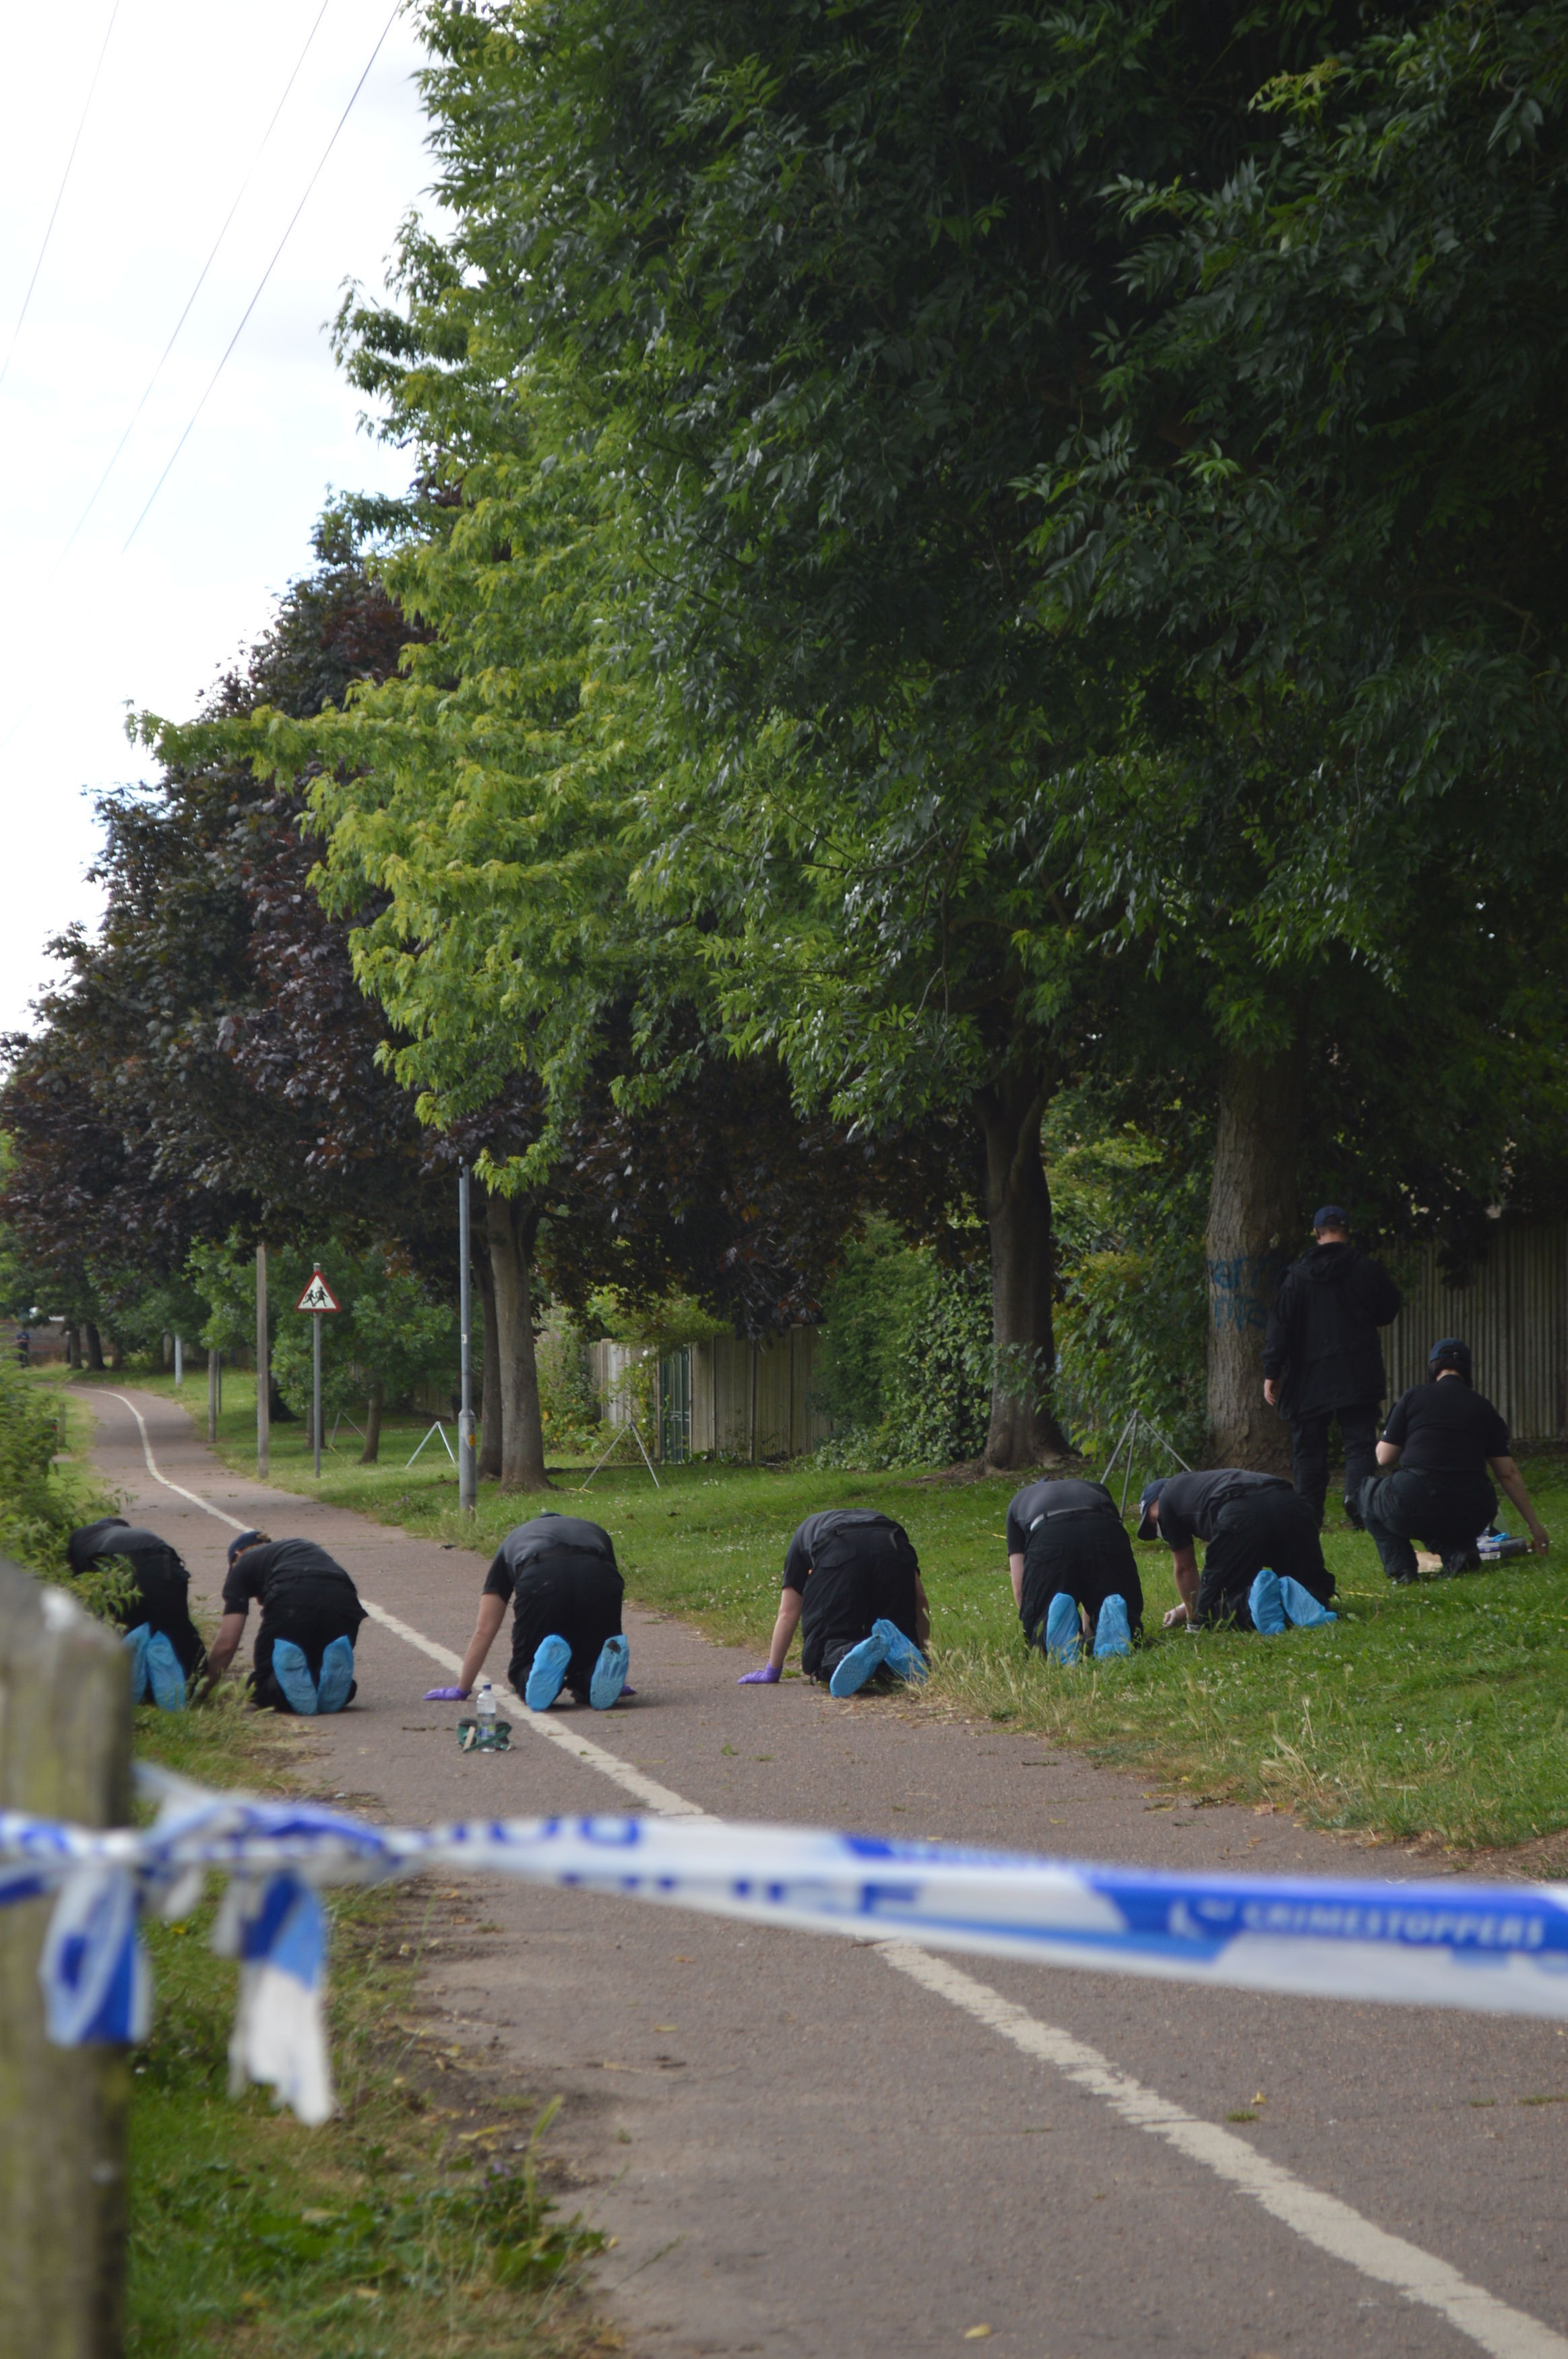 Murder investigations costing £100,000 a week